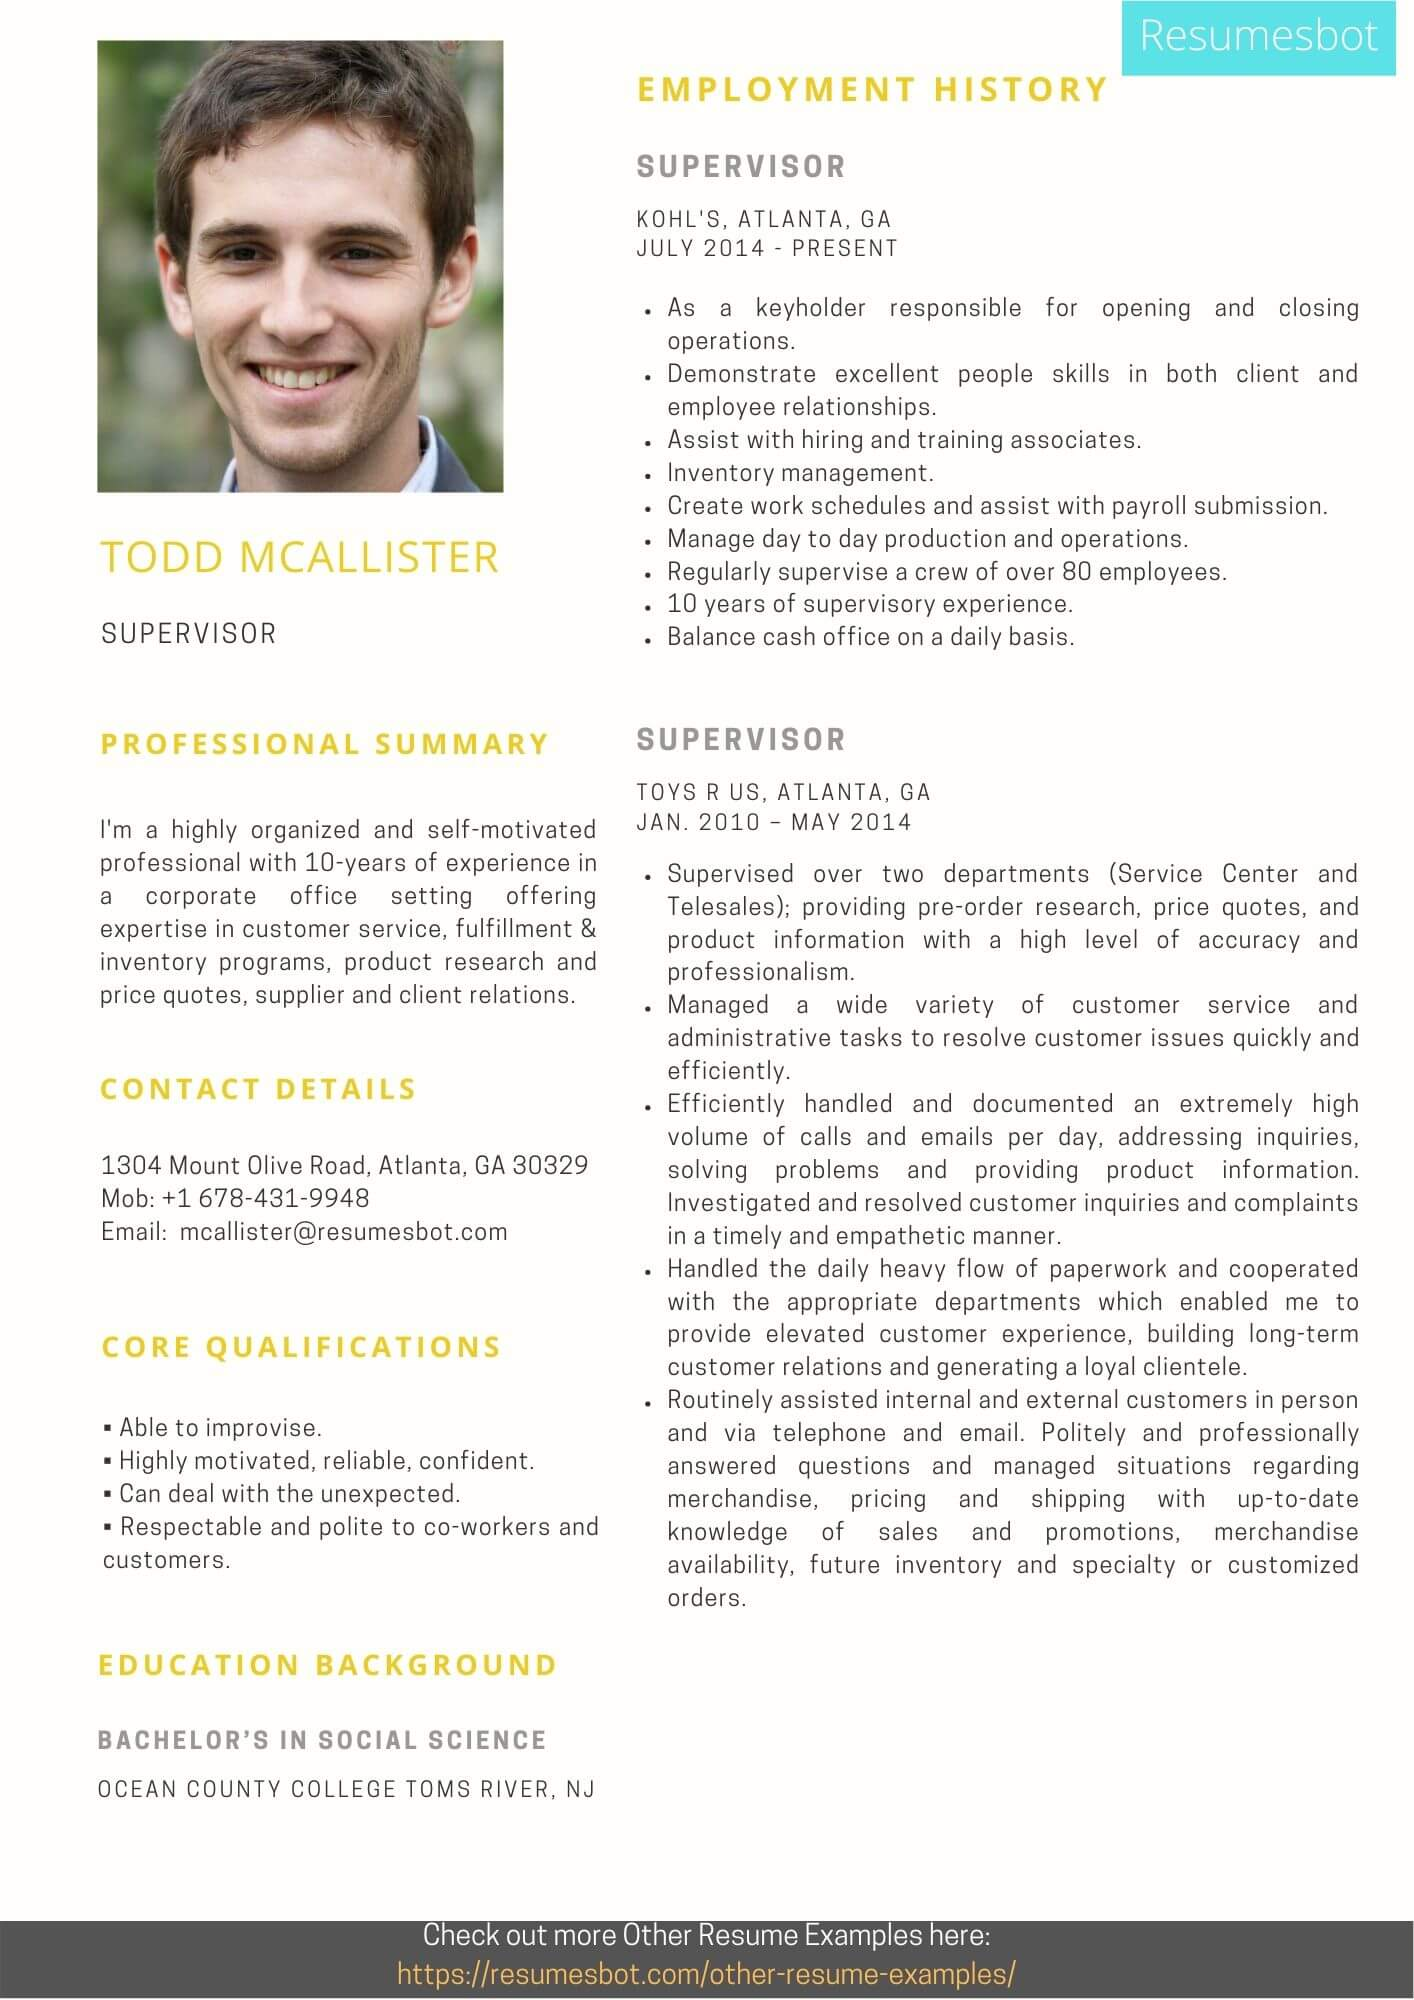 supervisor resume samples and tips pdf resumes bot objective example college format press Resume Supervisor Resume Objective Samples